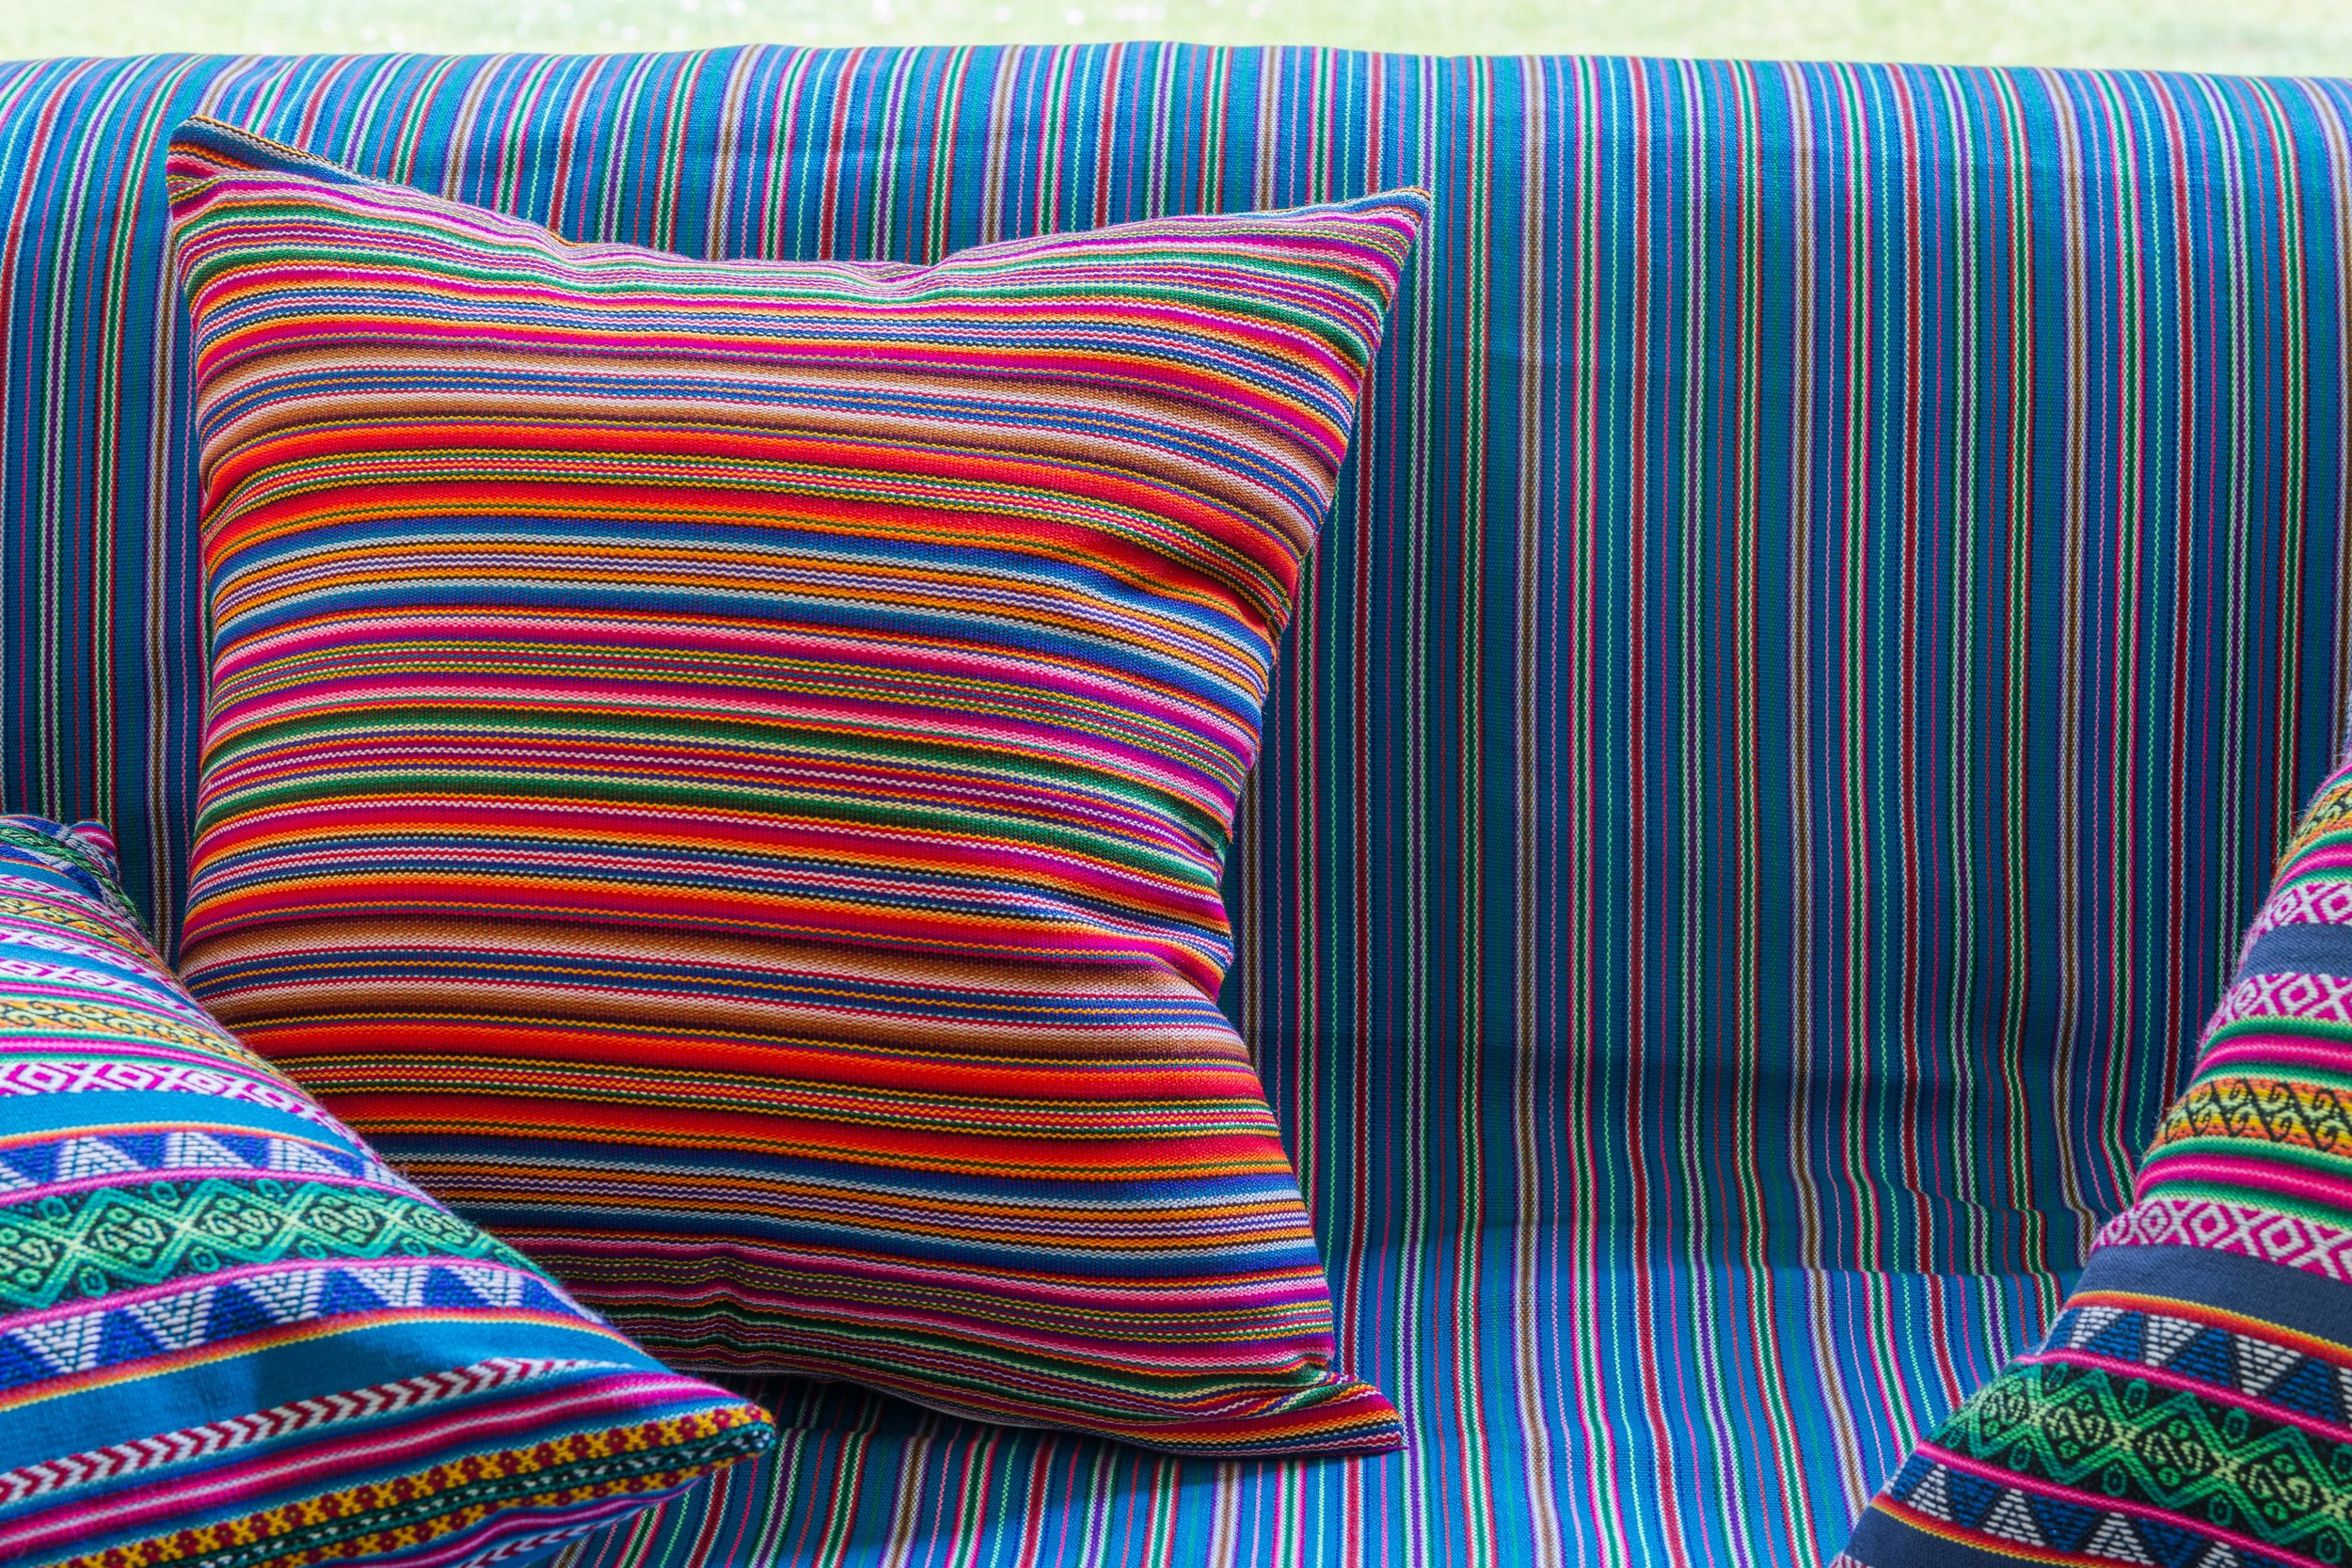 adjamee_decoration_coussin_banquette-arequipa-coussin-plaid.jpg